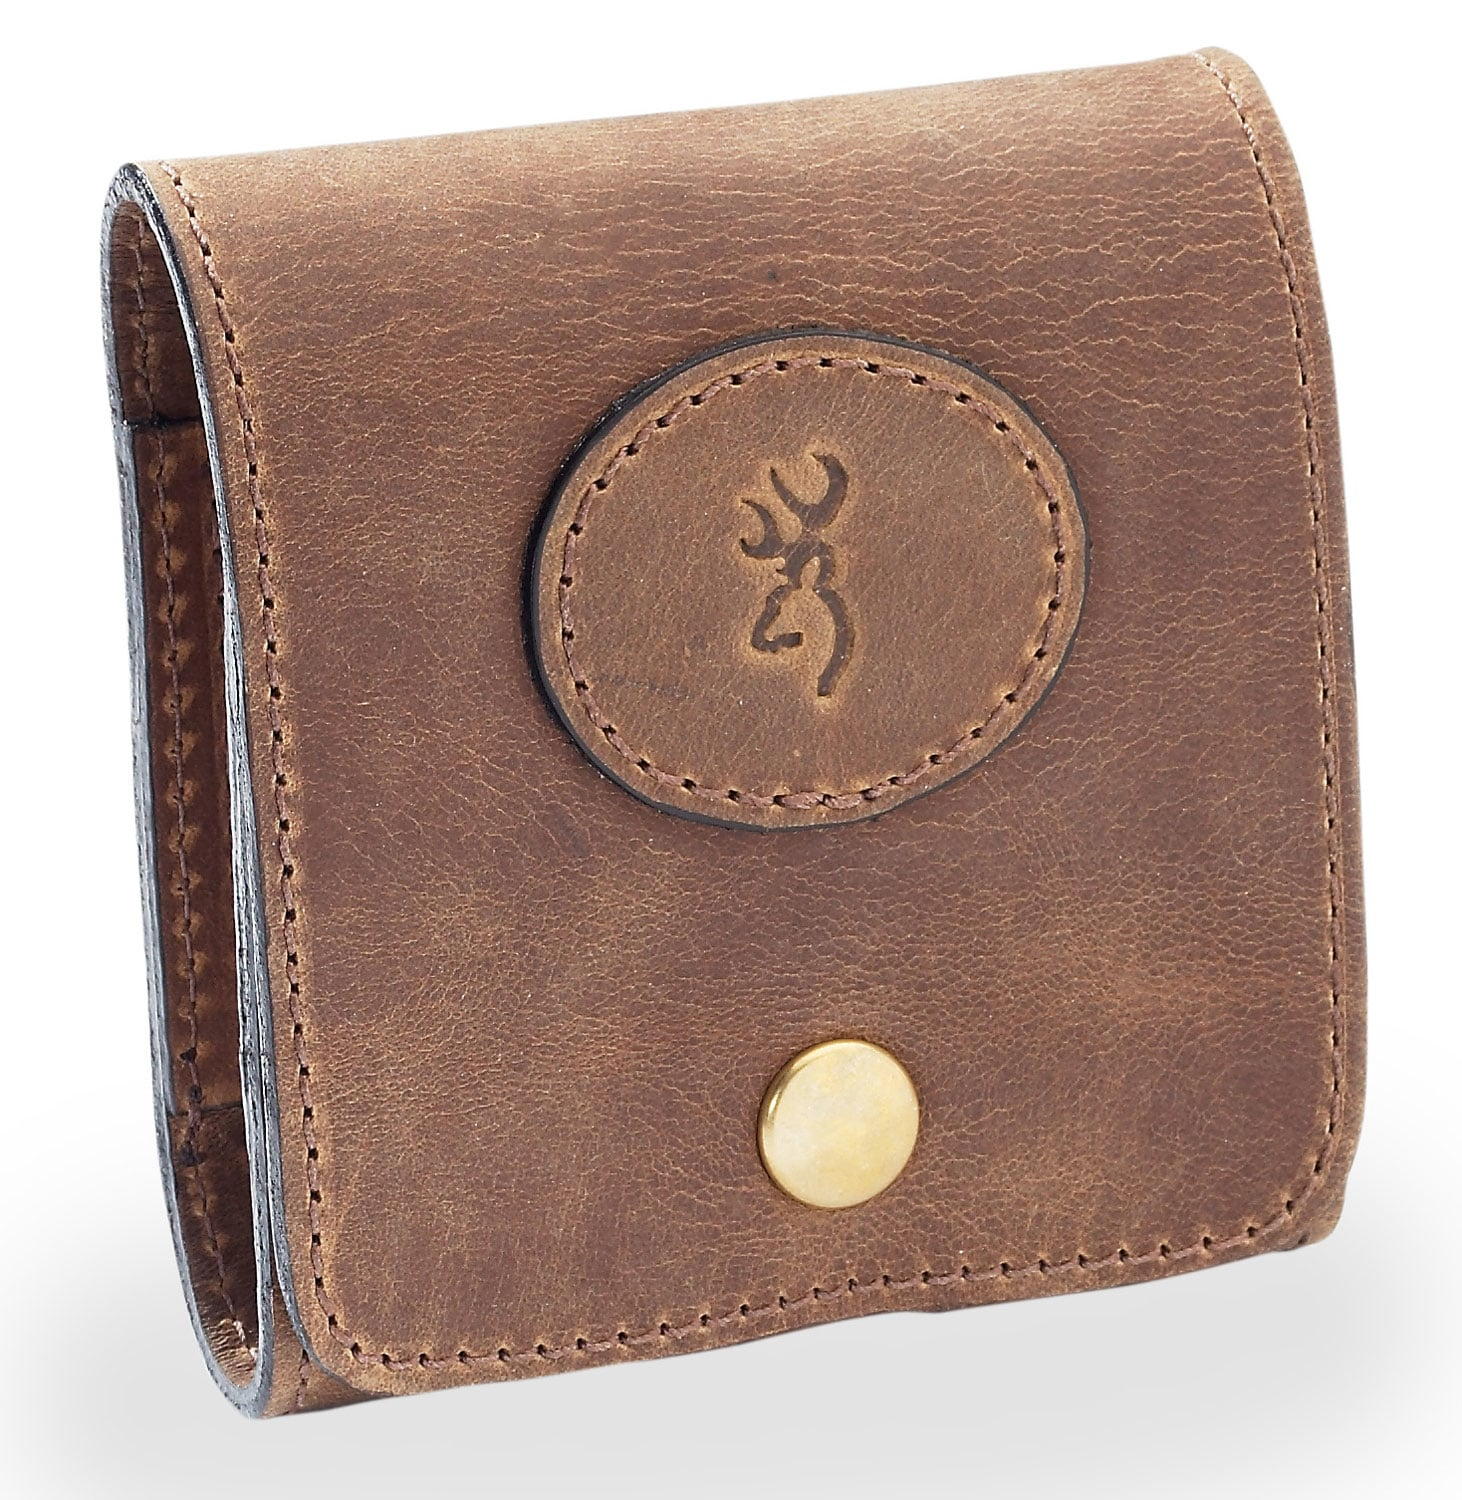 BROWNING CRAZY HORSE LEATHER